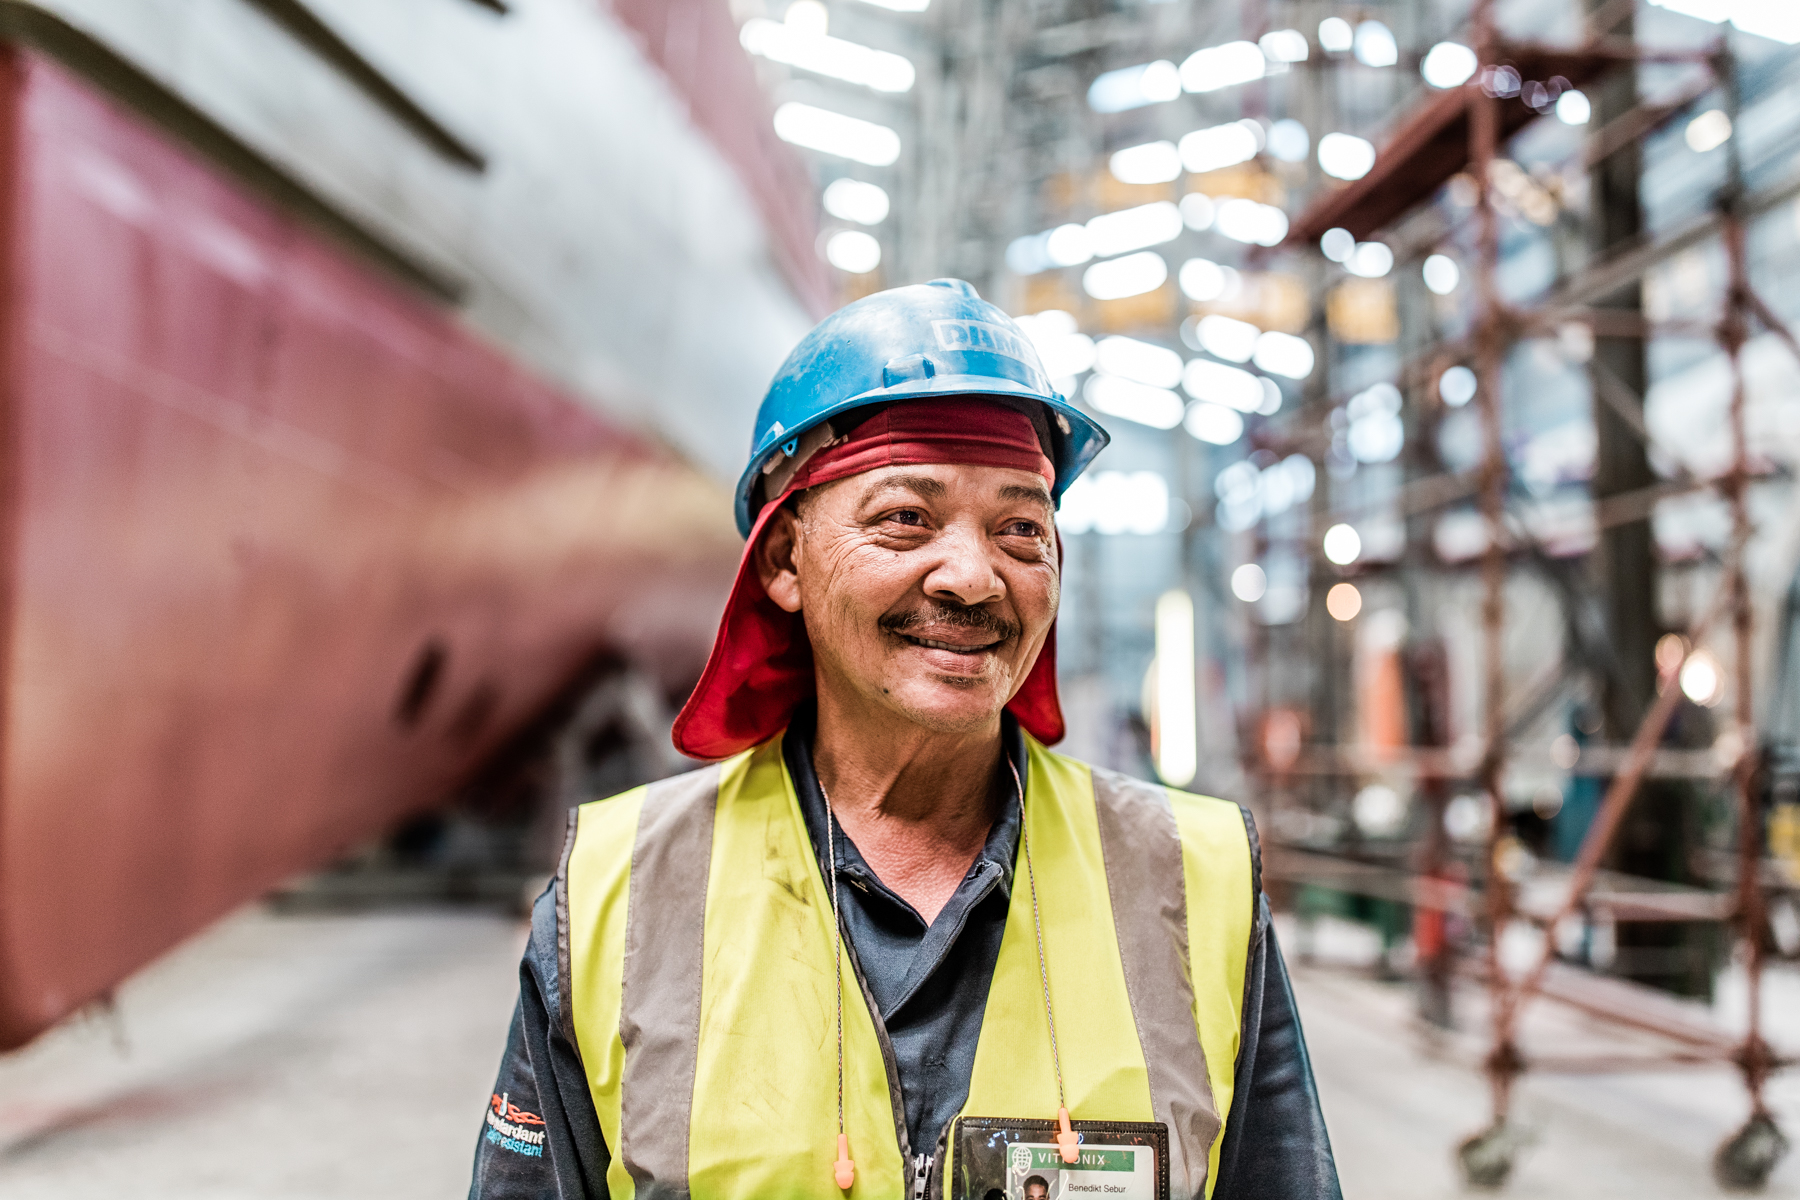 Industrial Advertising Shipyard - Portrait